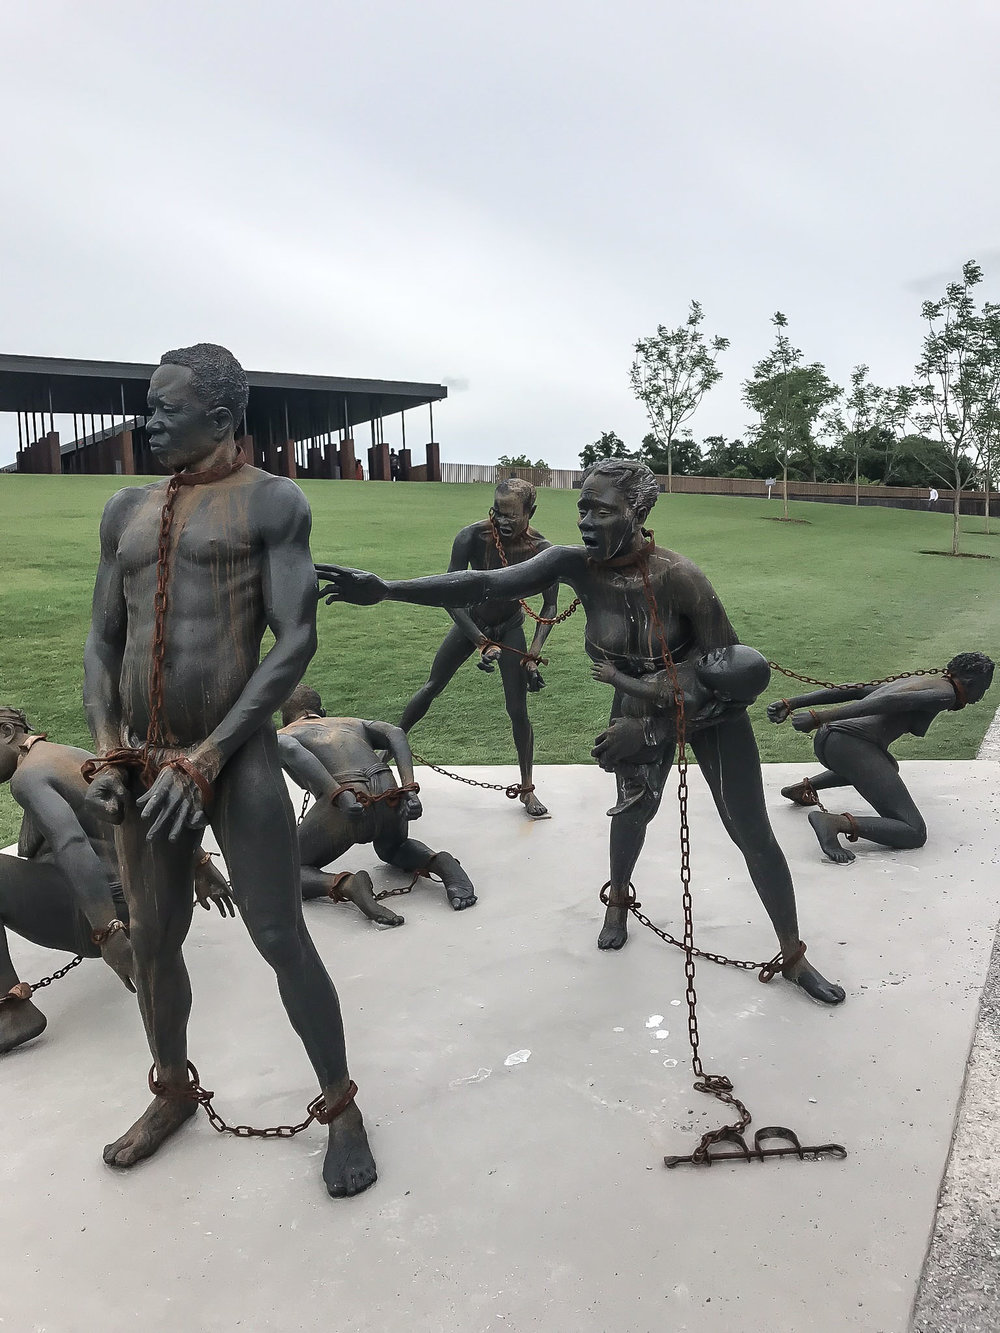 Sculpture by Kwame Akoto-Bamfo of enslaved African men and women at the National Peace and Justice Memorial. This heartbreaking piece is dedicated to the memory of the victims of the trans-Atlantic slave trade.